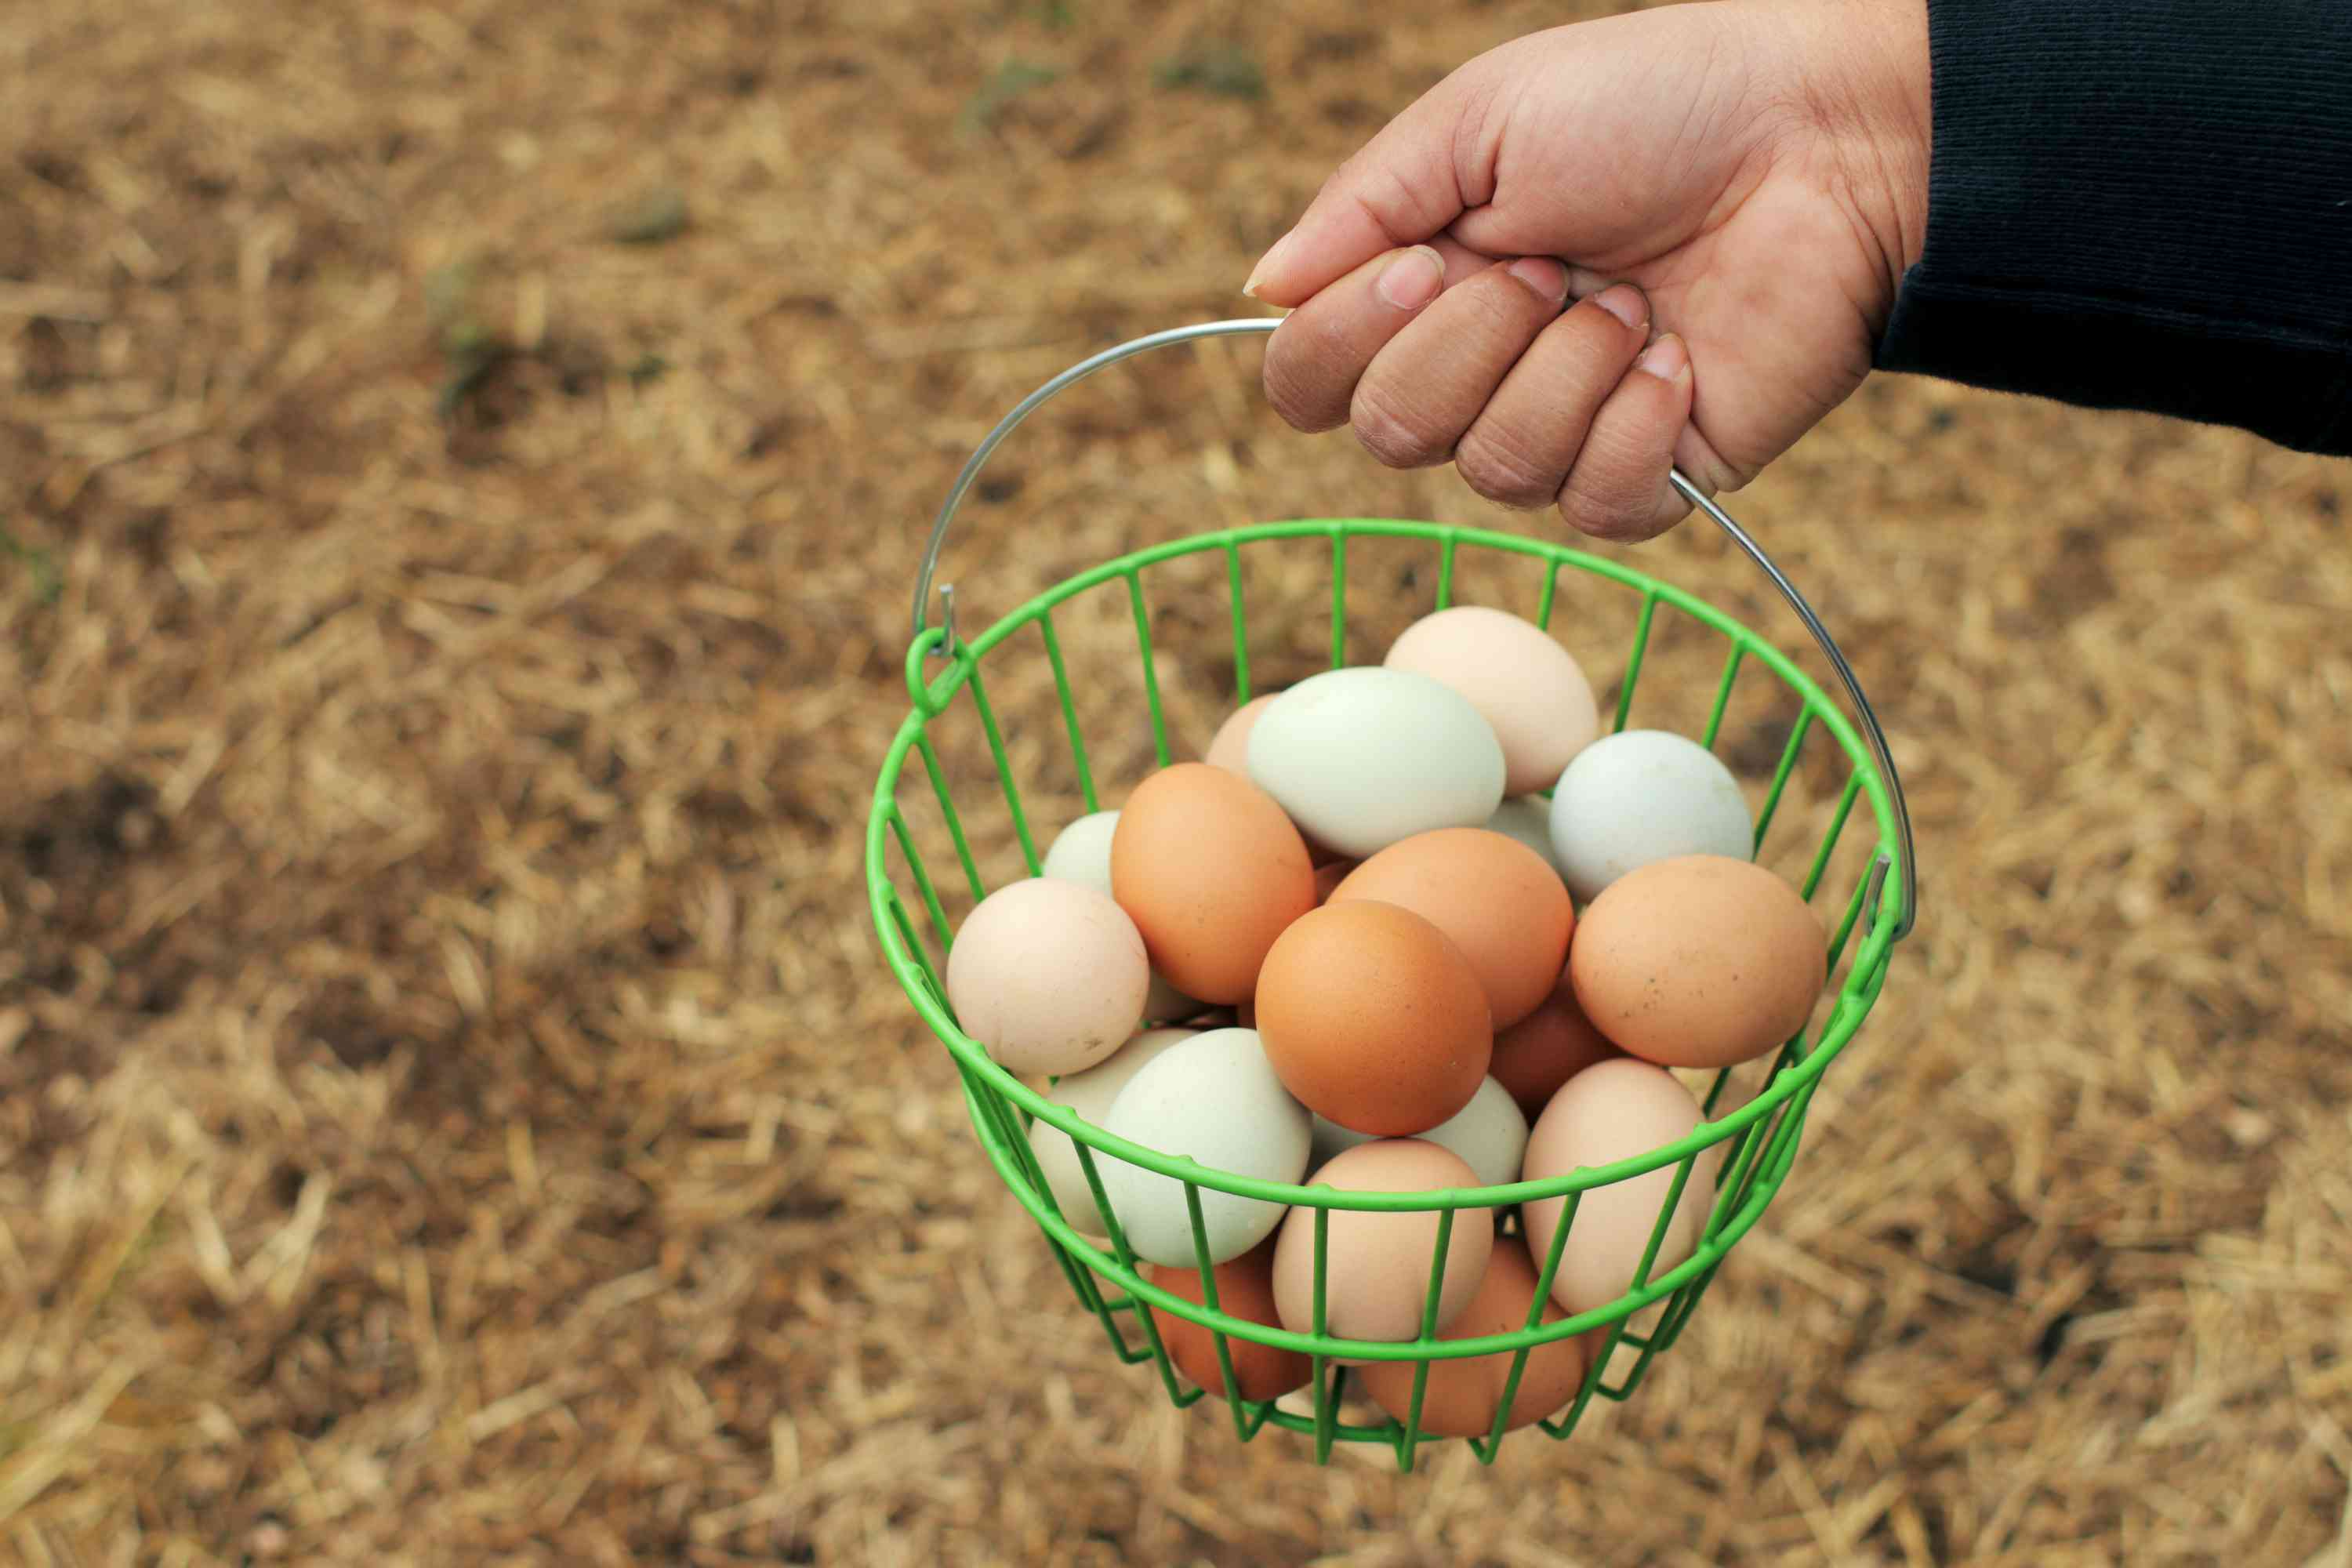 person gathering eggs in a basket